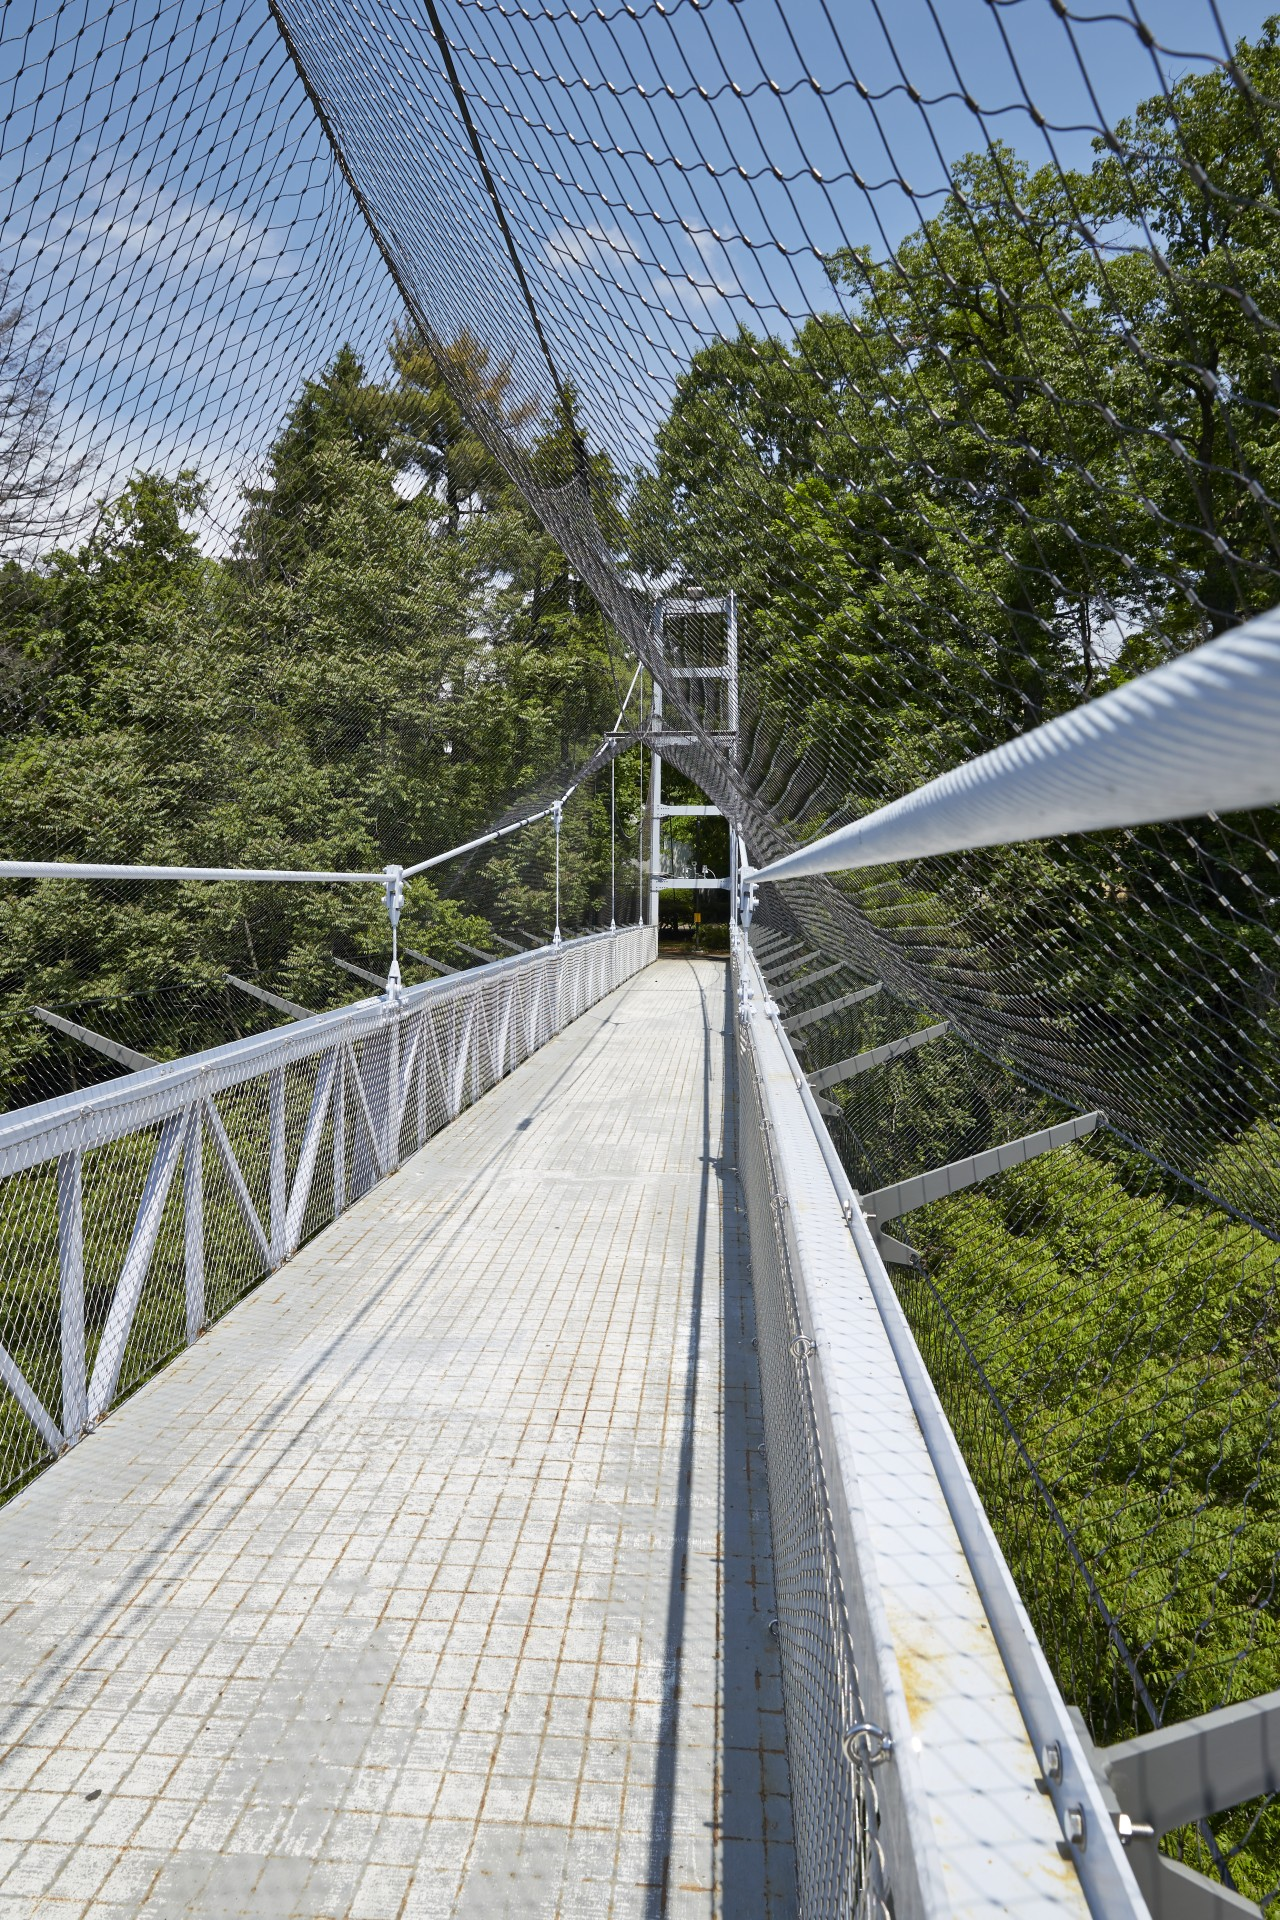 high bridge with safety net